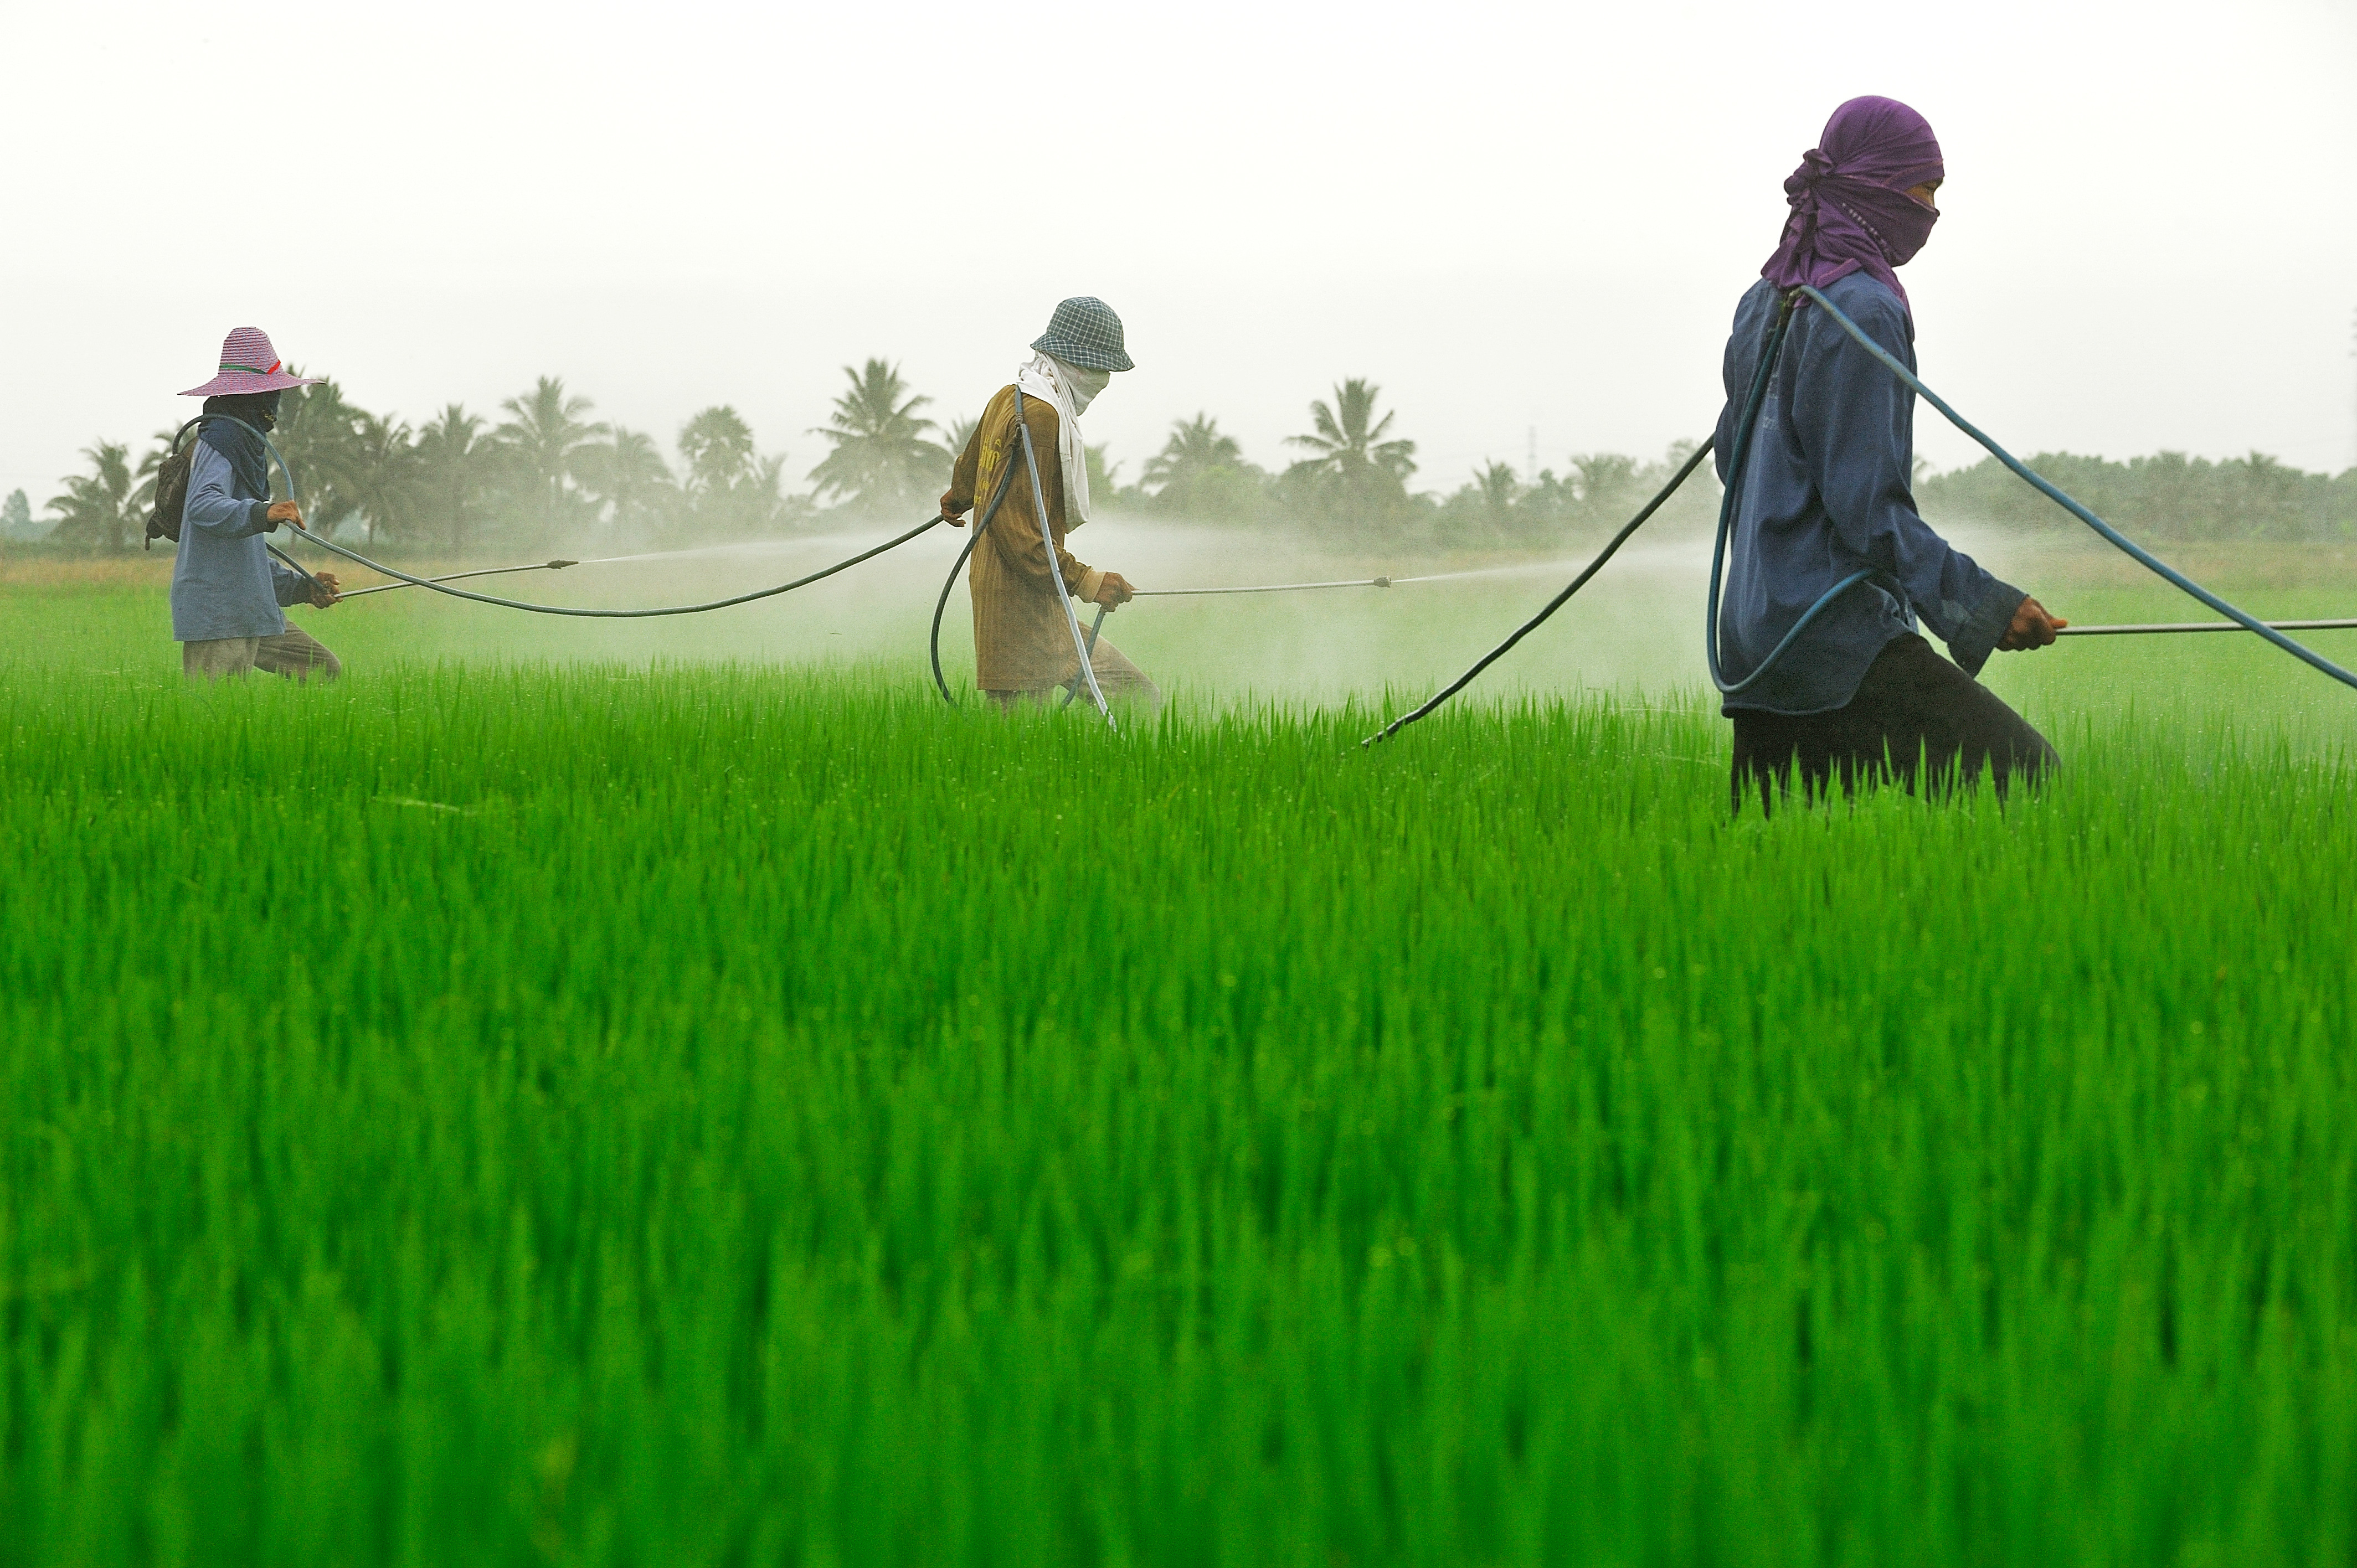 Rice farmes spraying pesticides on a rice field